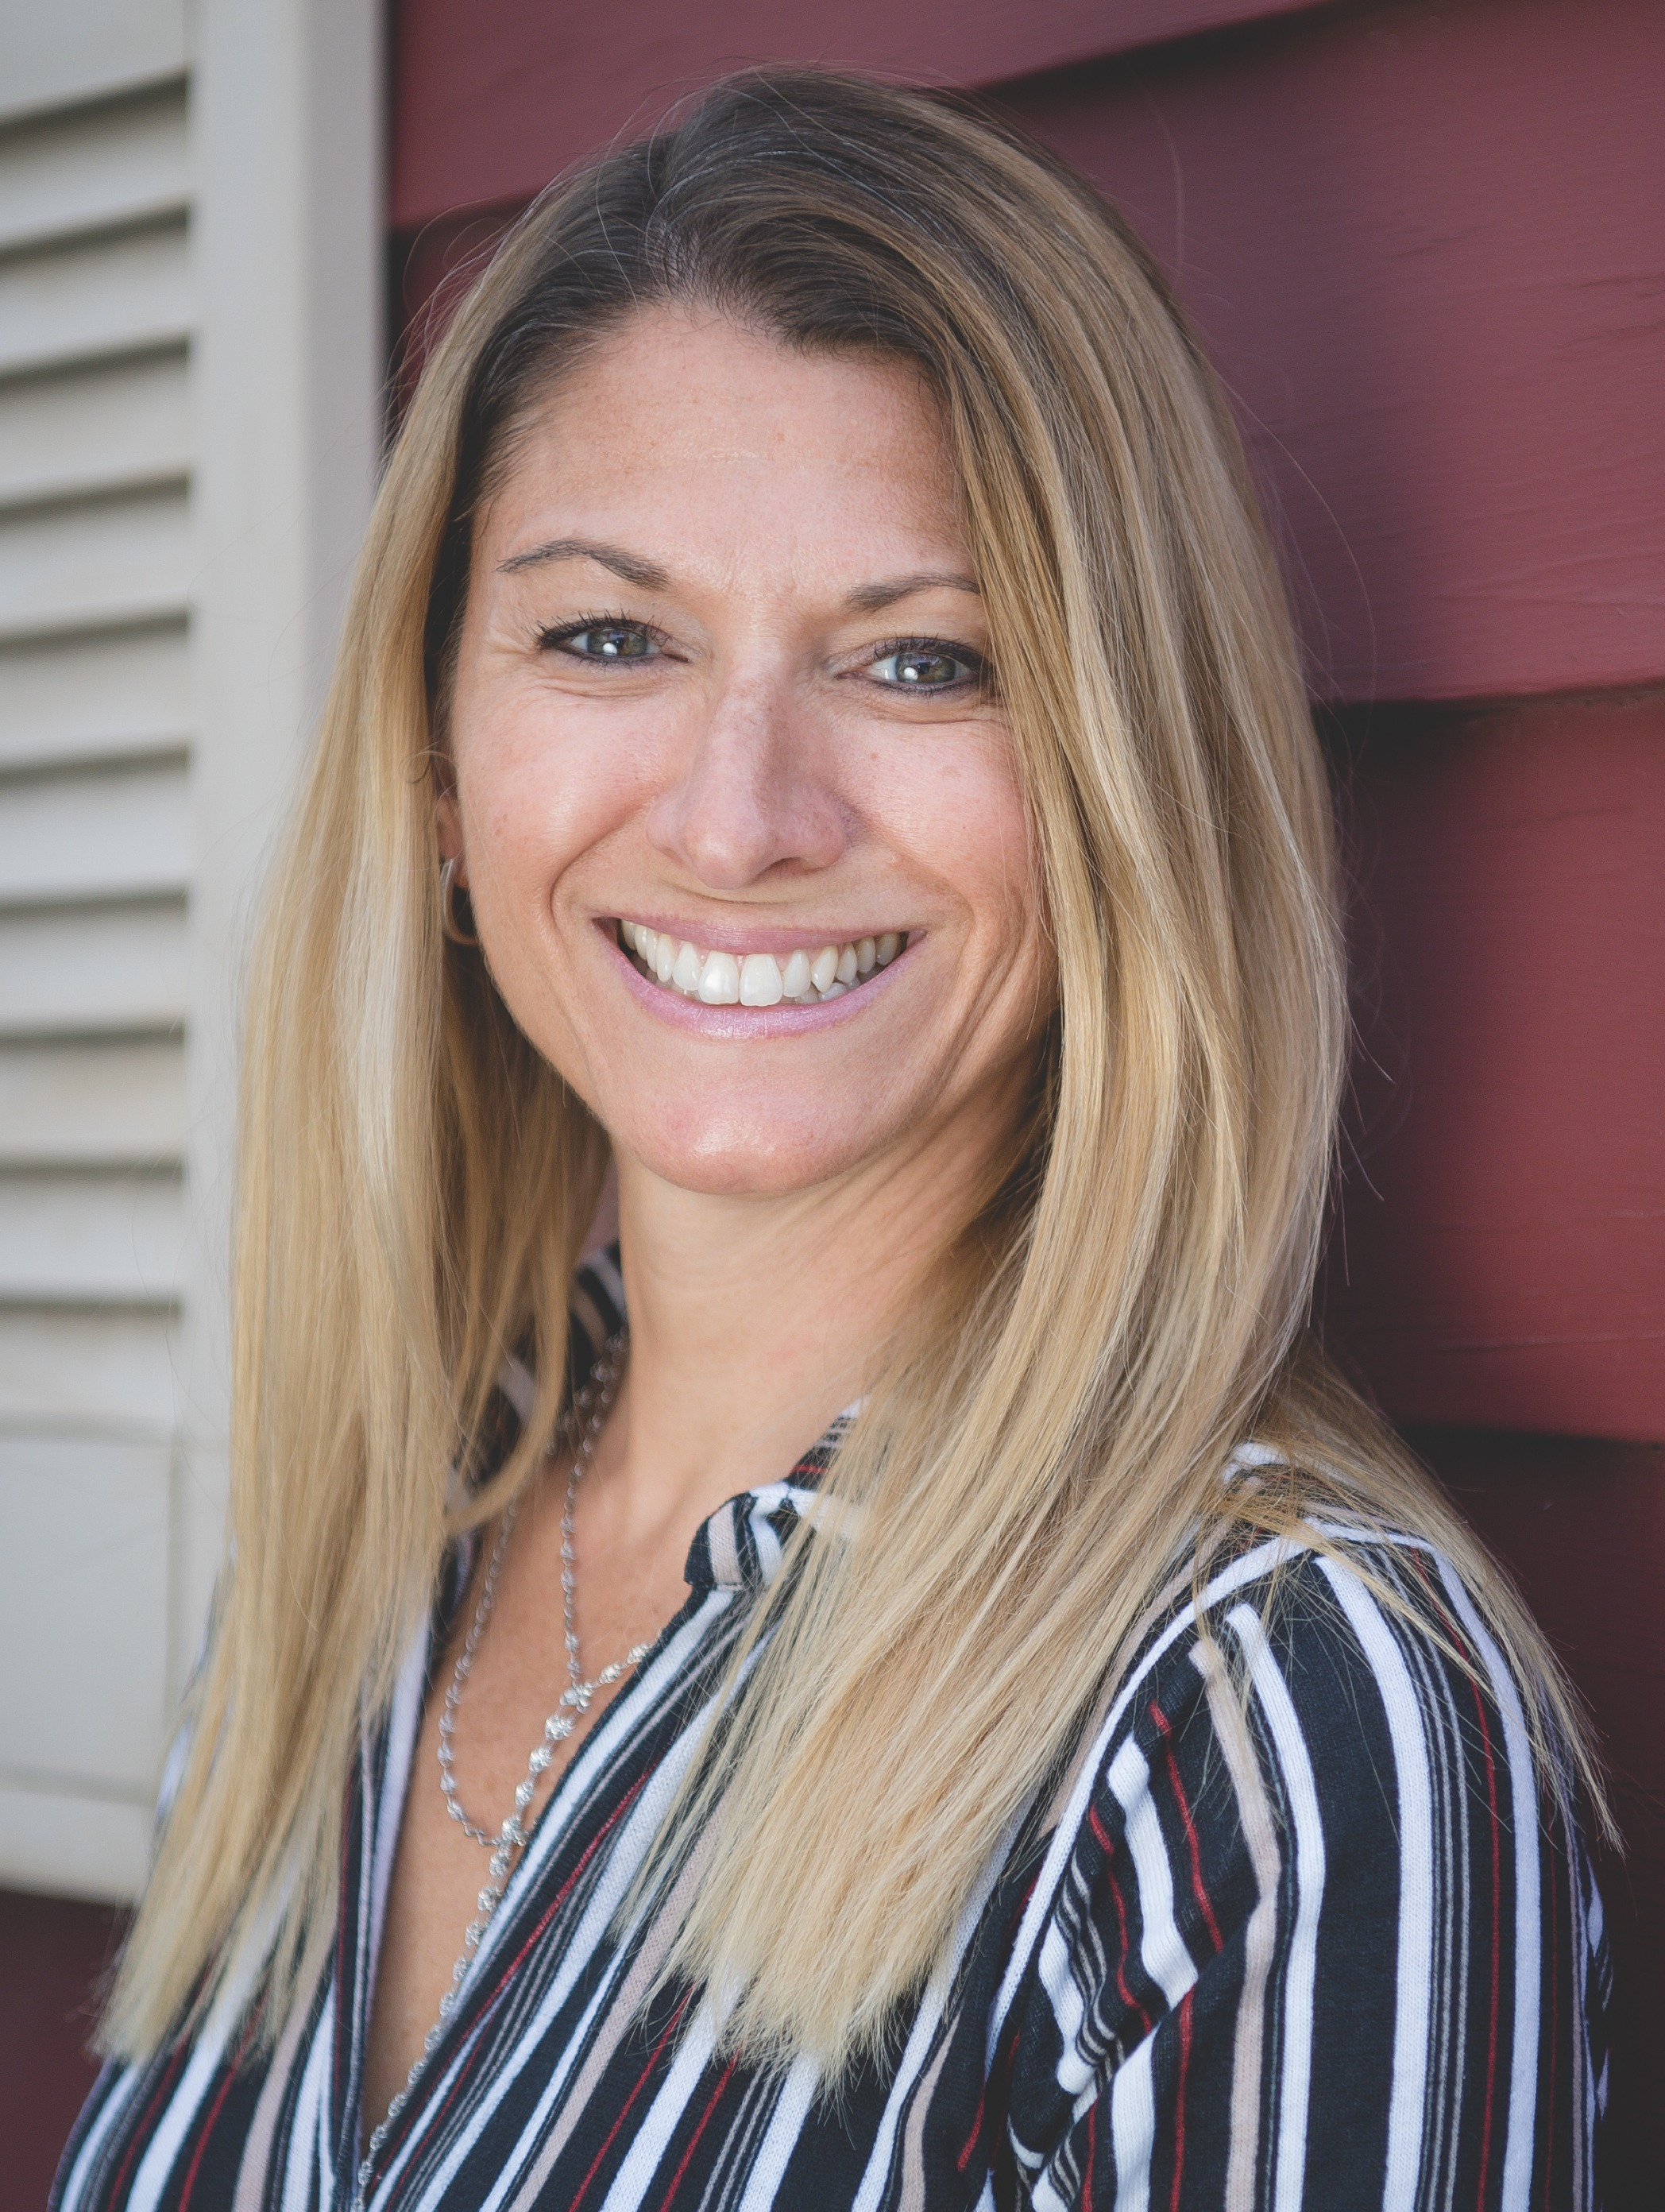 Agent Spotlight on Christy Rodrigues!